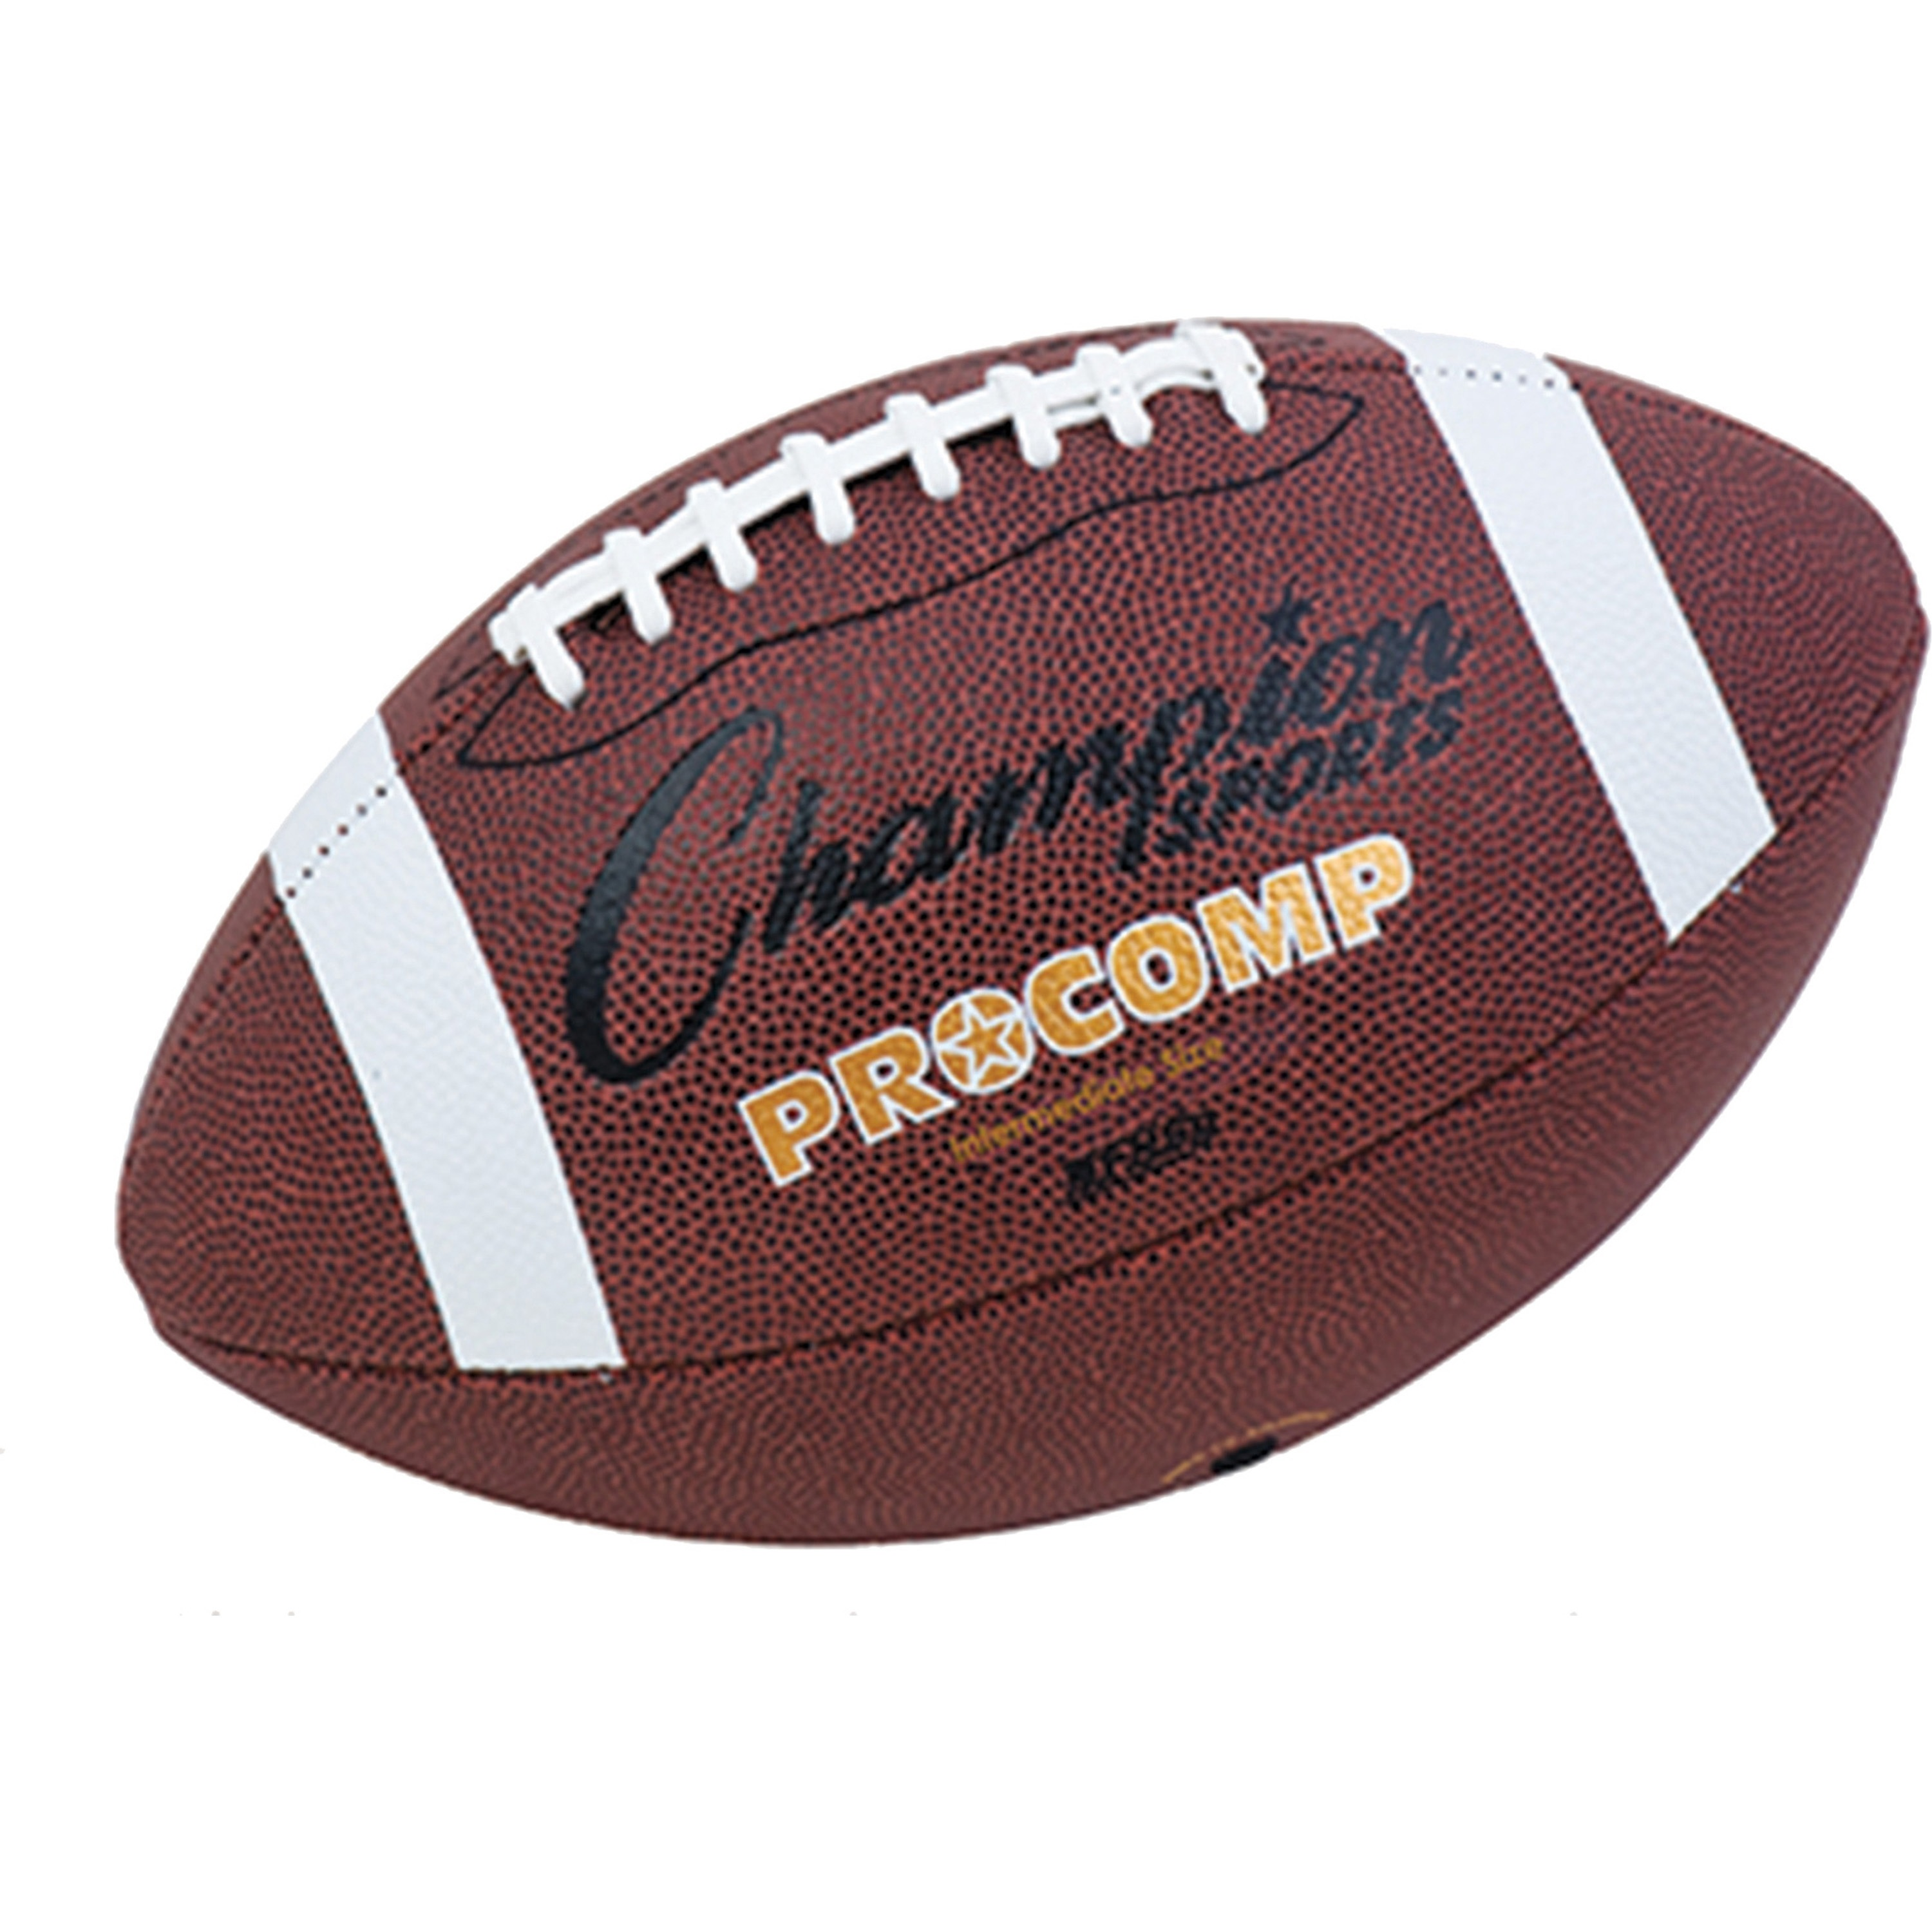 Champion Sport, CSICF200, Intermediate Size Pro Comp Football, 1 Each, Brown